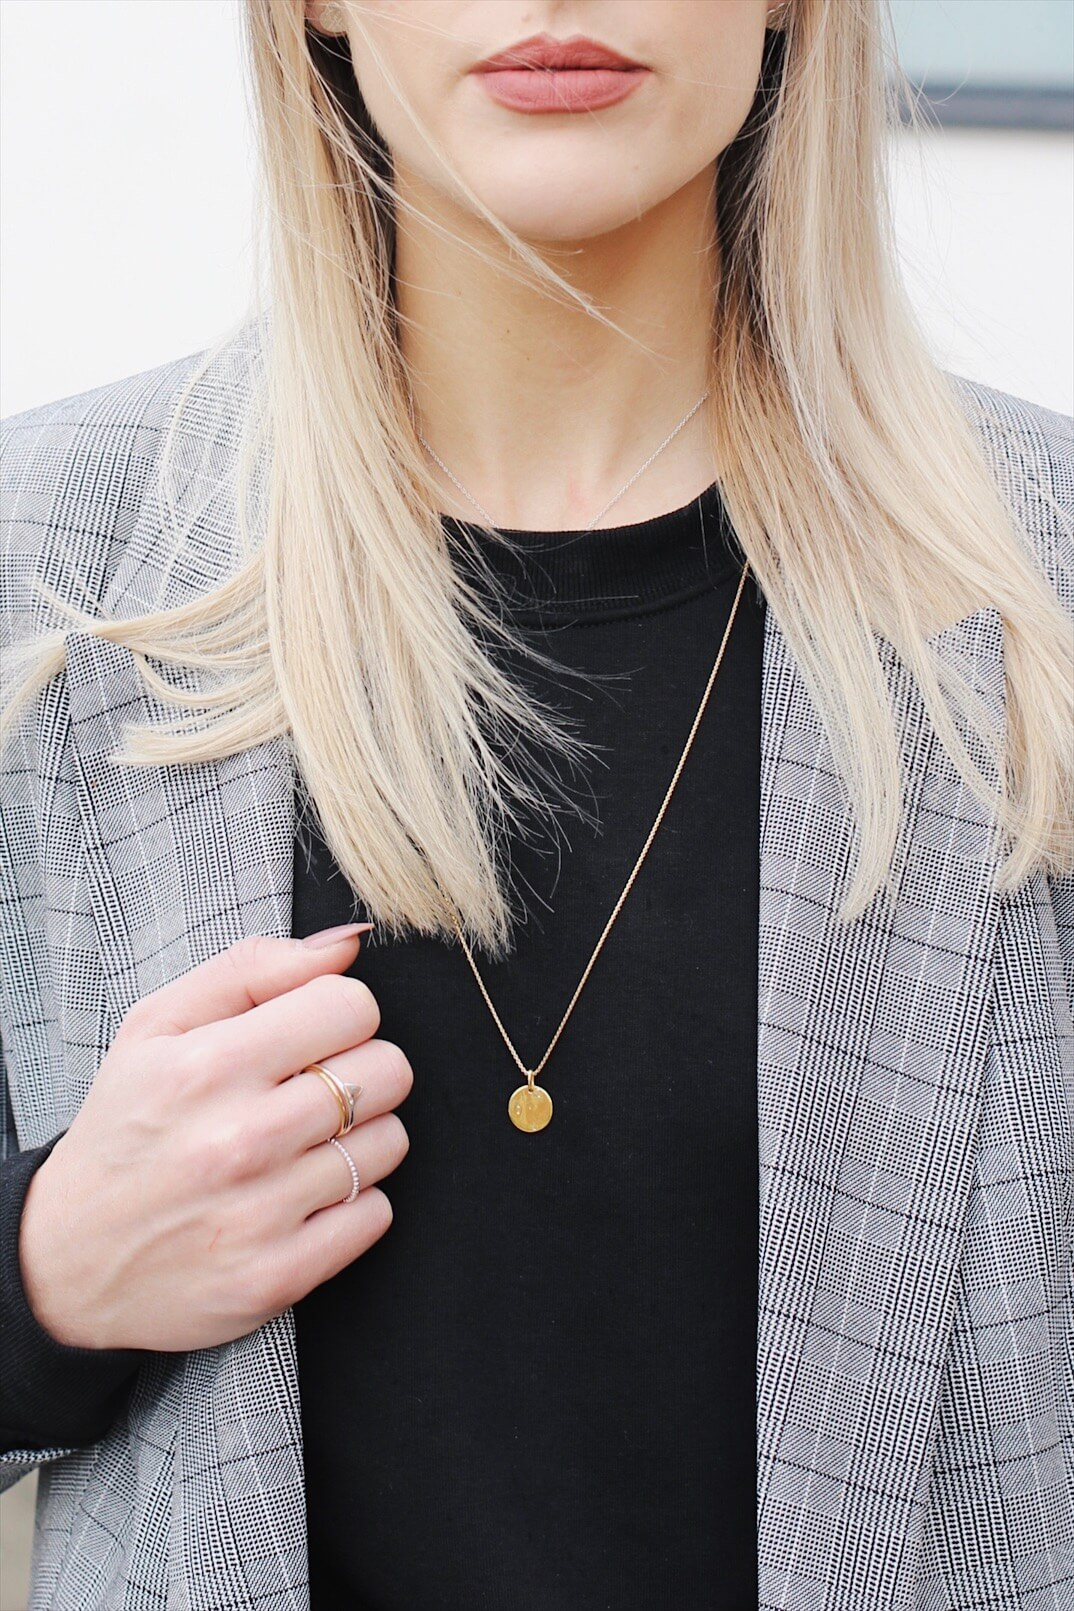 Charming Mixing Gold And Silver Jewellery On Style Blogger